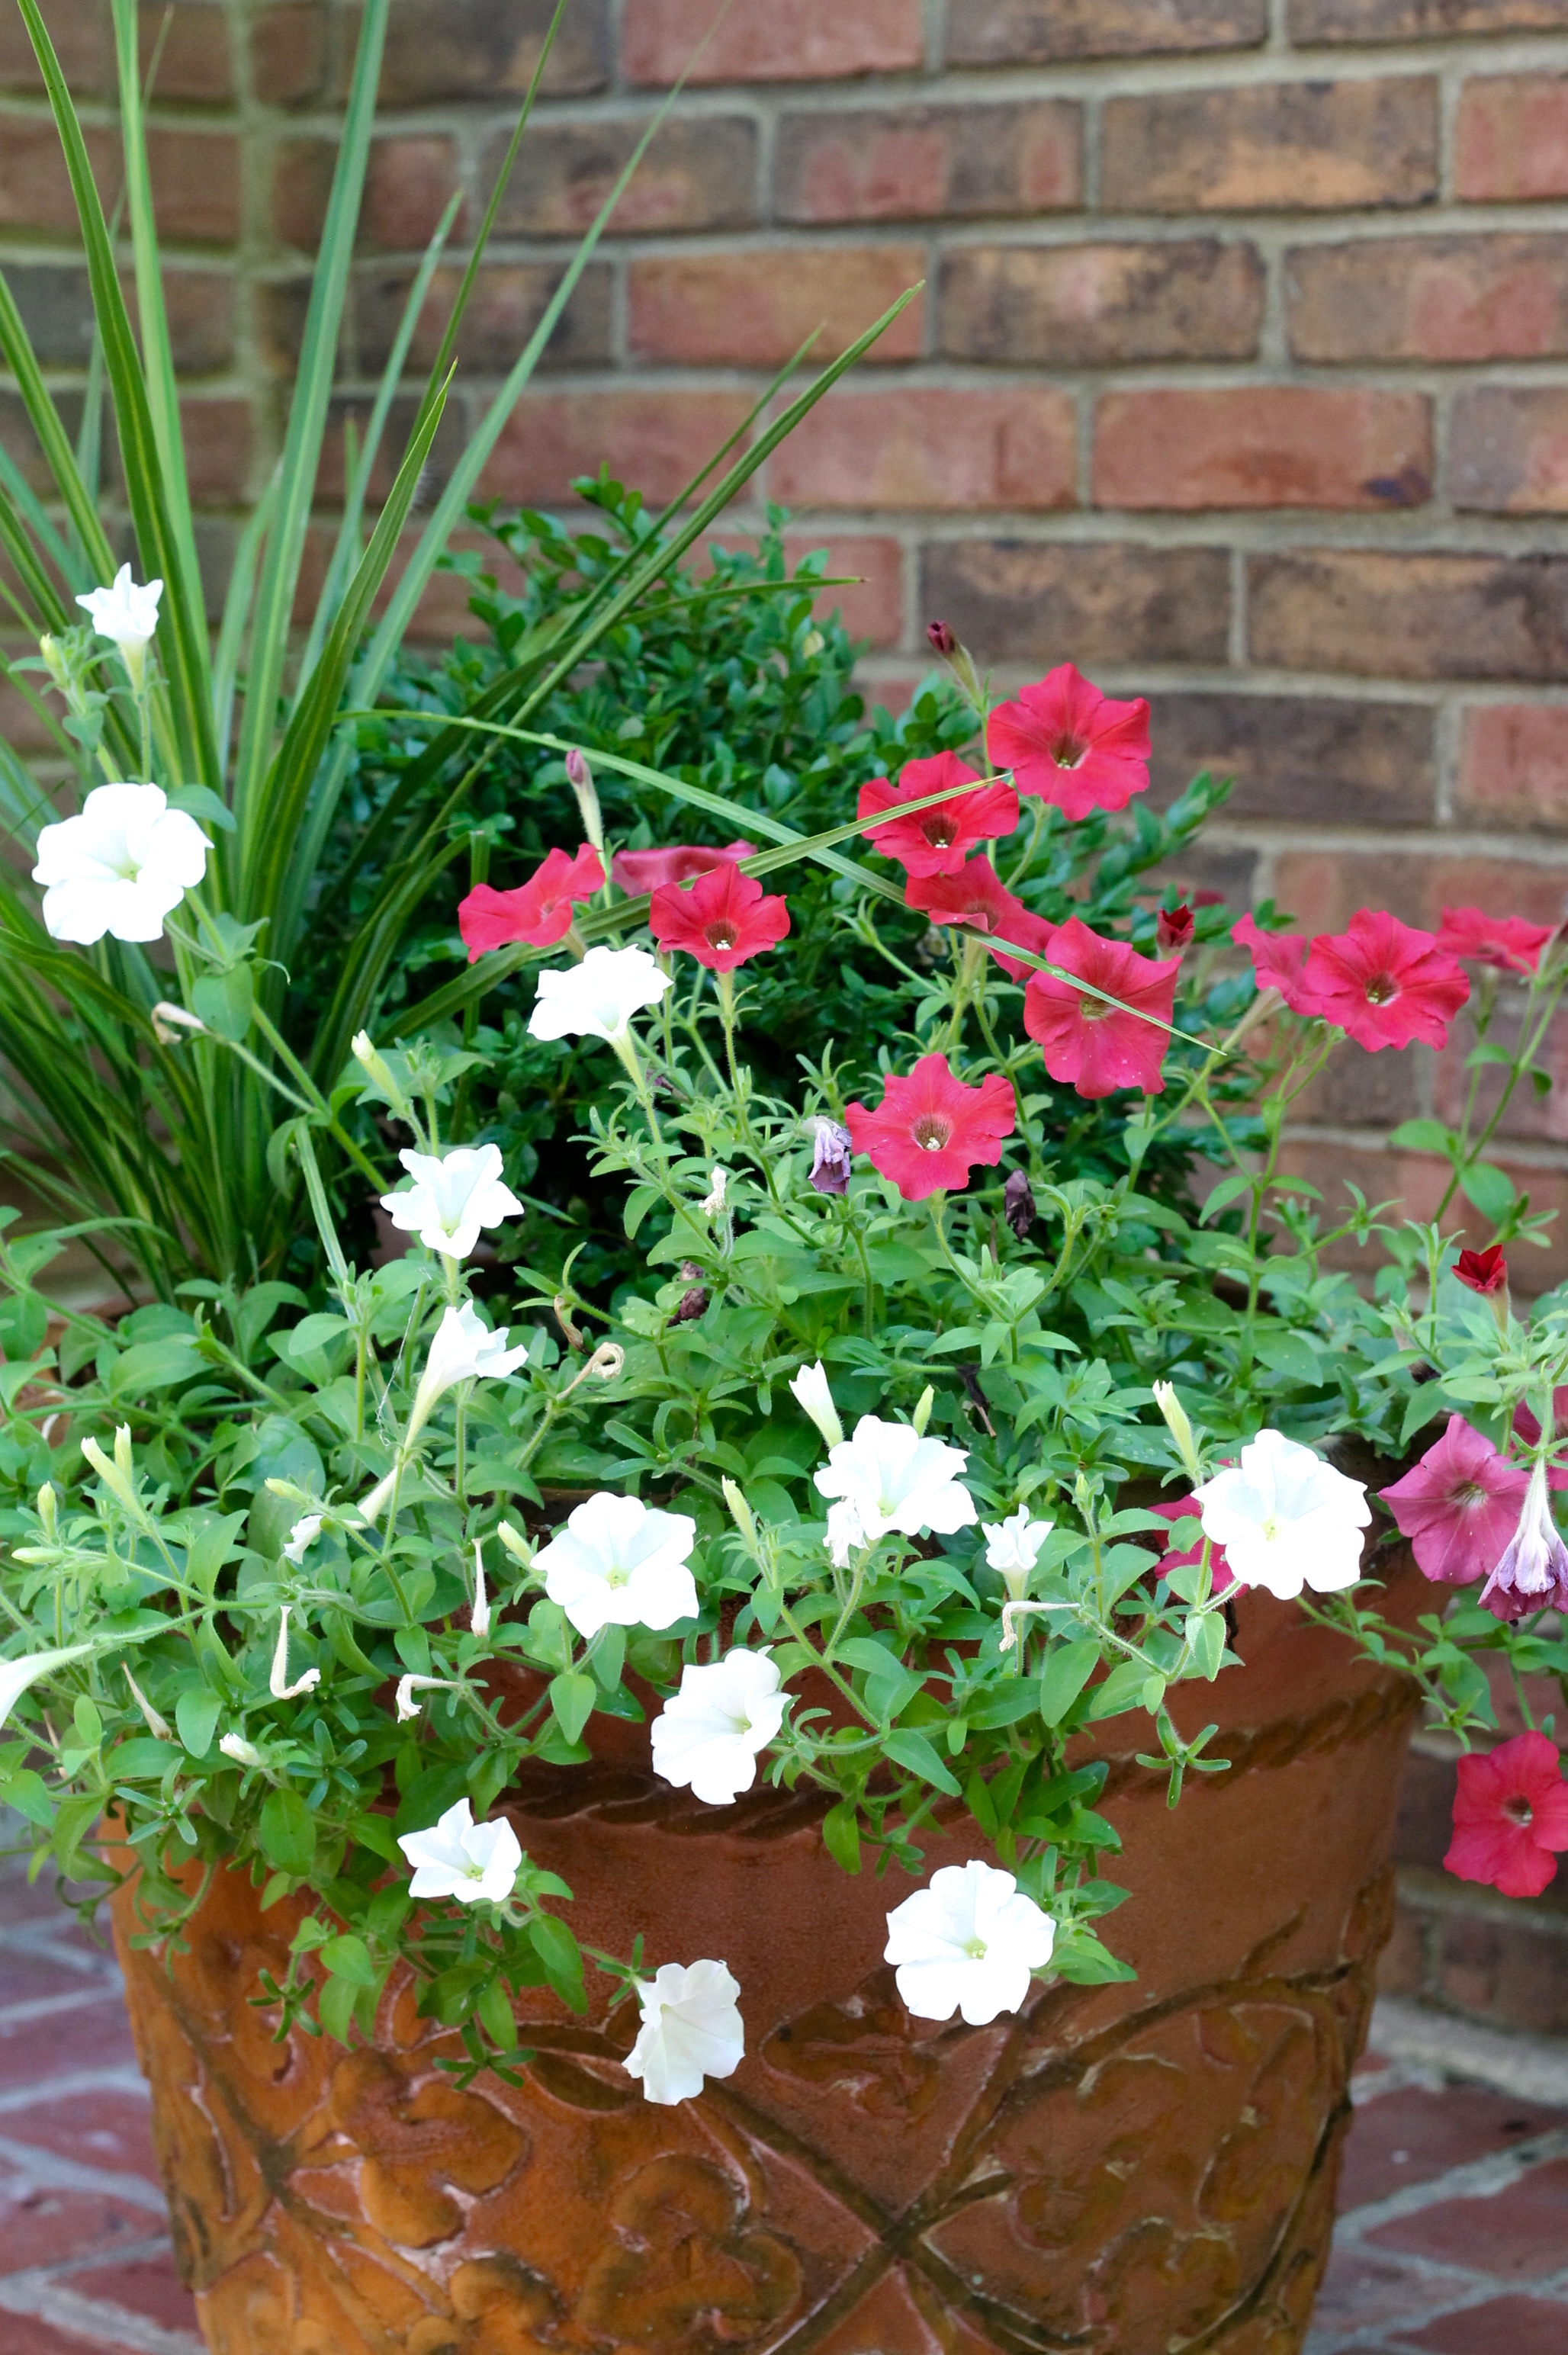 Wave petunias ready for July 4 - The 2 Seasons